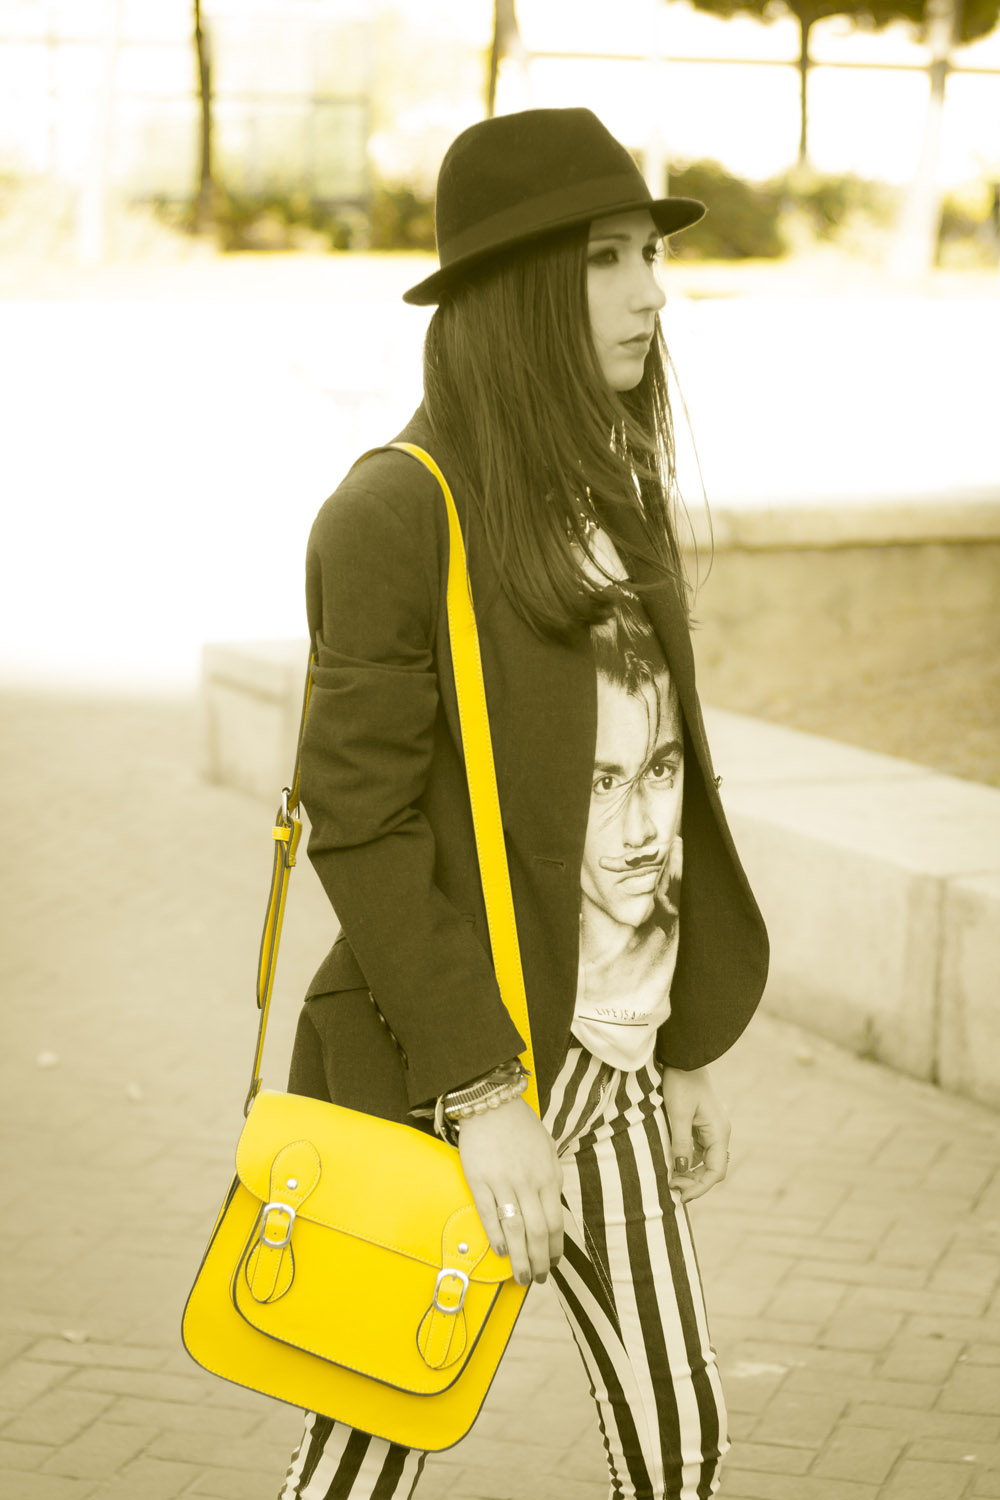 satchel bag amarillo fluor